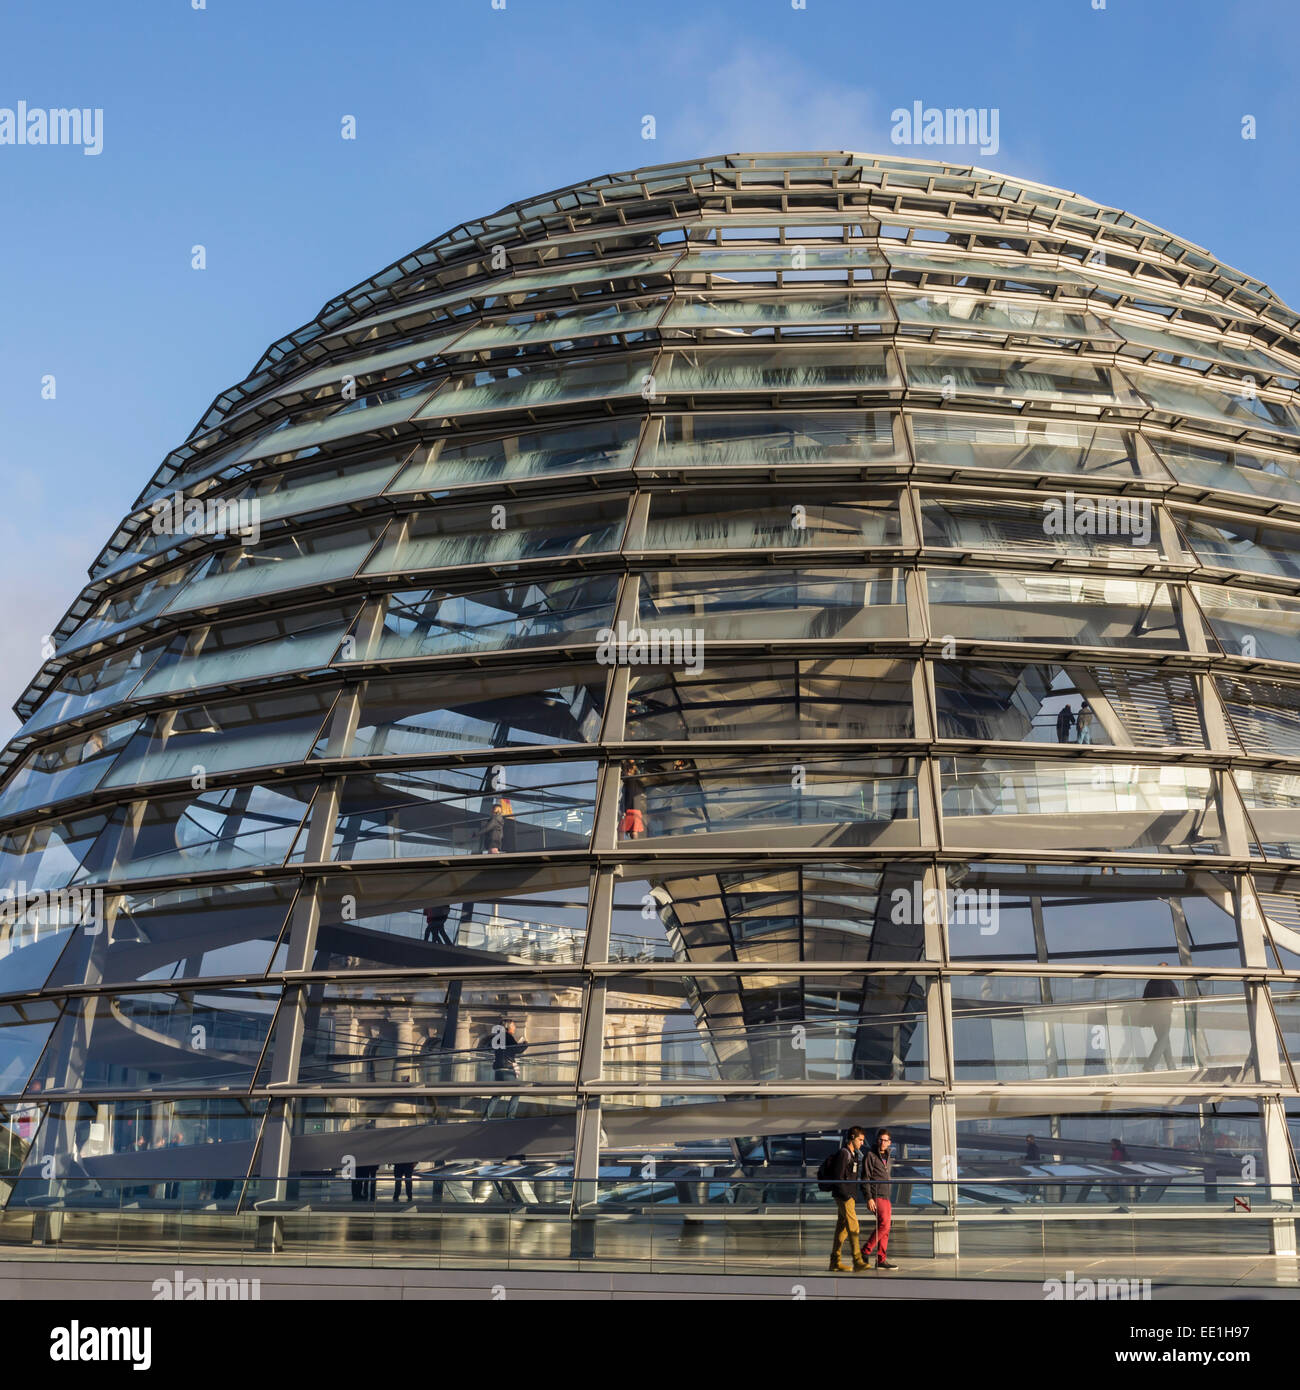 Reichstag dome exterior from its rooftop terrace, with passing visitors, early morning, Mitte, Berlin, Germany, - Stock Image